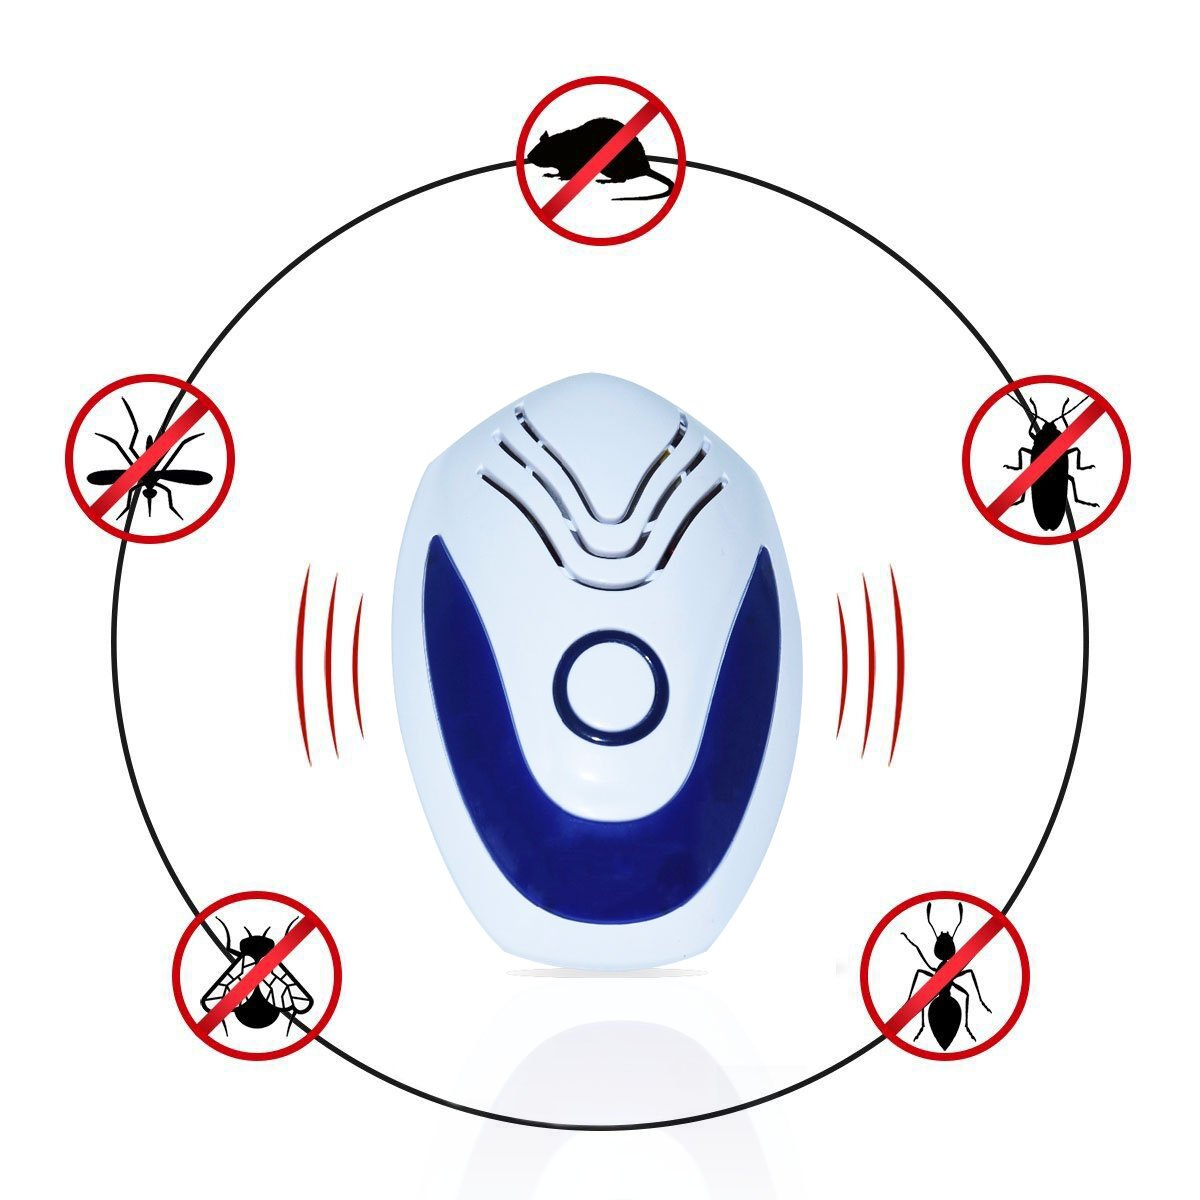 Eyhome Ultrasonic Pest Repellent, 6 Pack Electronic Plug In Pest Control Repeller, Pest Reject for Mice, Spiders, Roaches, Mosquitoes, Ants , Rats, Flies, Bugs, Human & Pet Safe